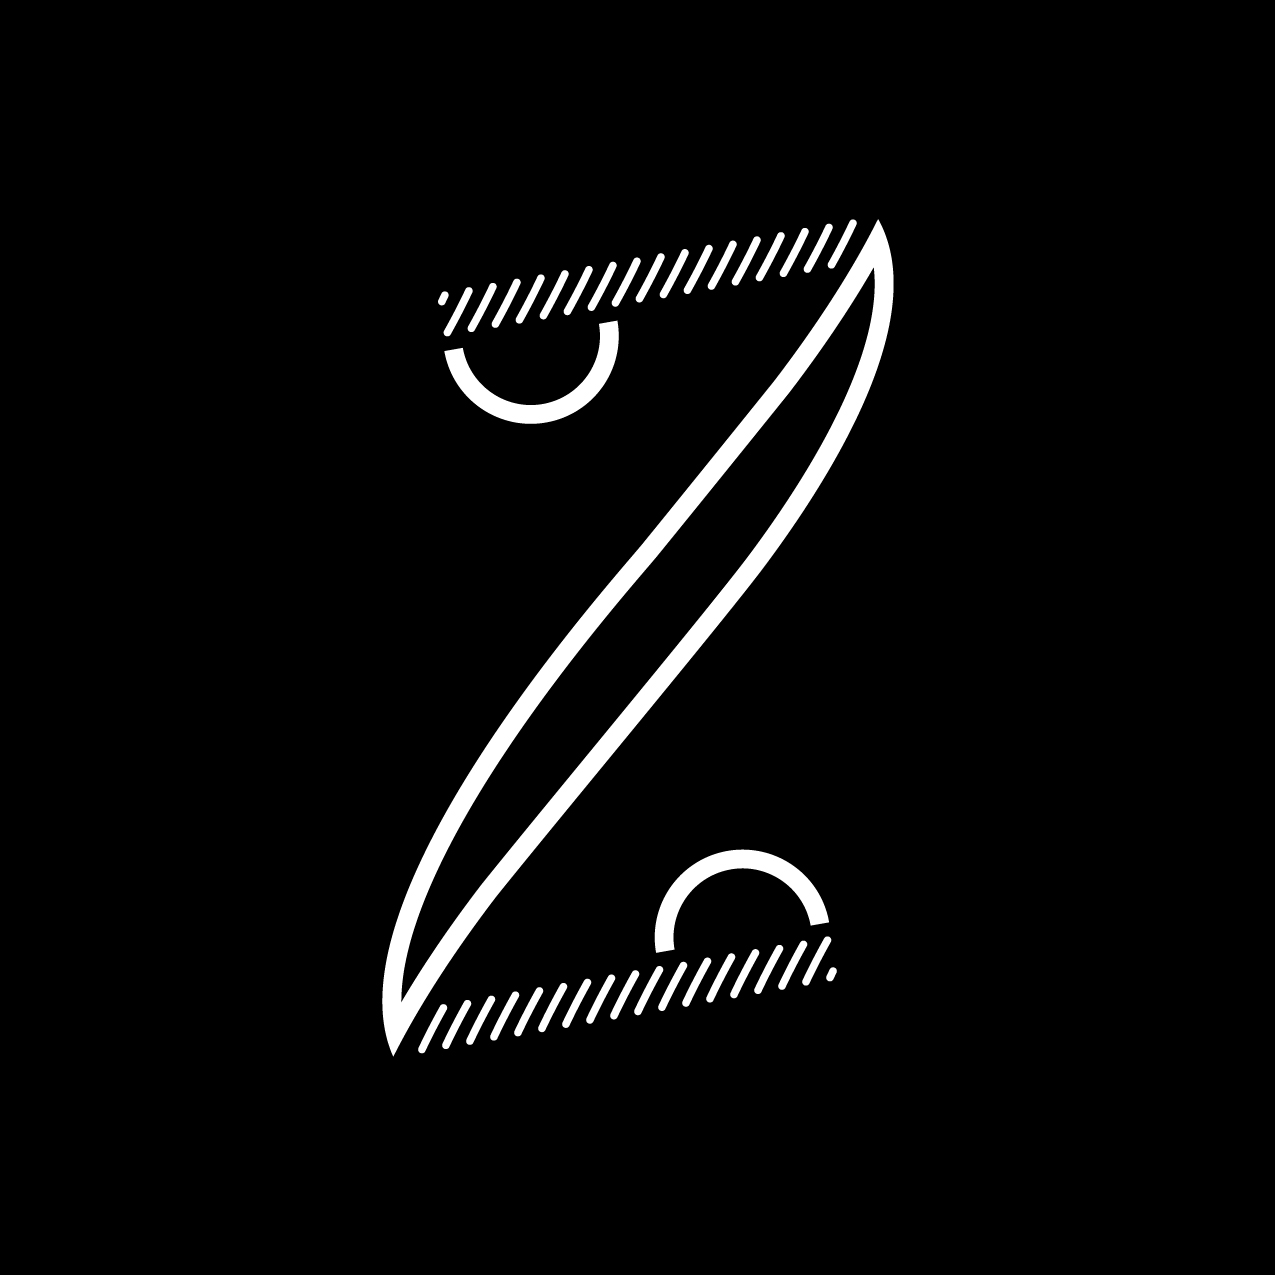 Letter Z9 Design by Furia